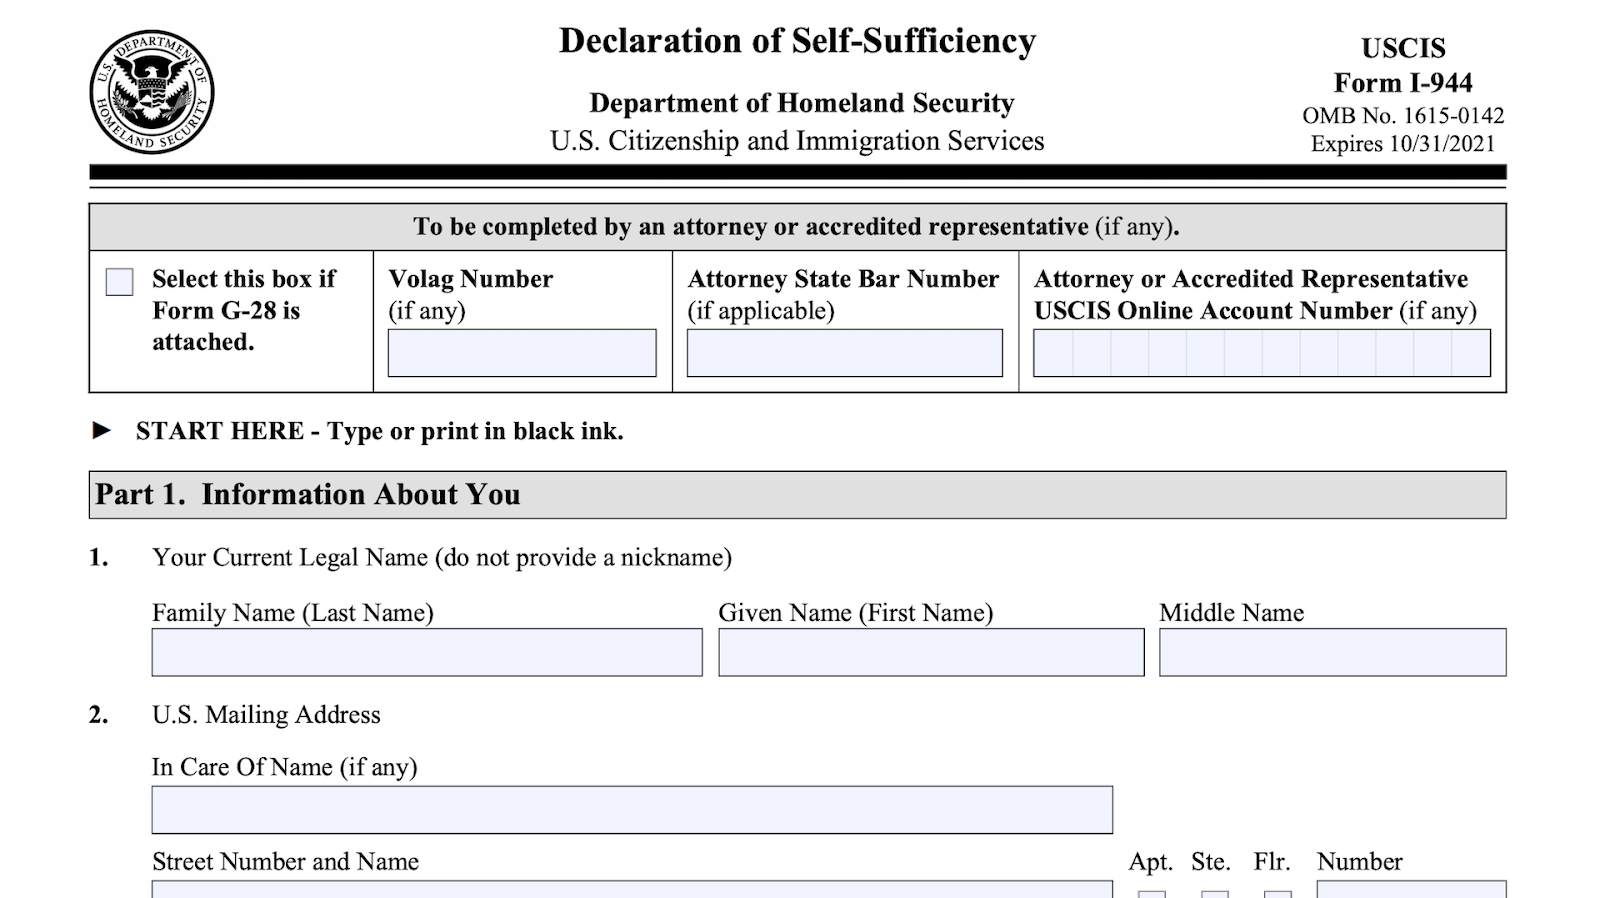 i-944 declaration of self-sufficiency form screenshot